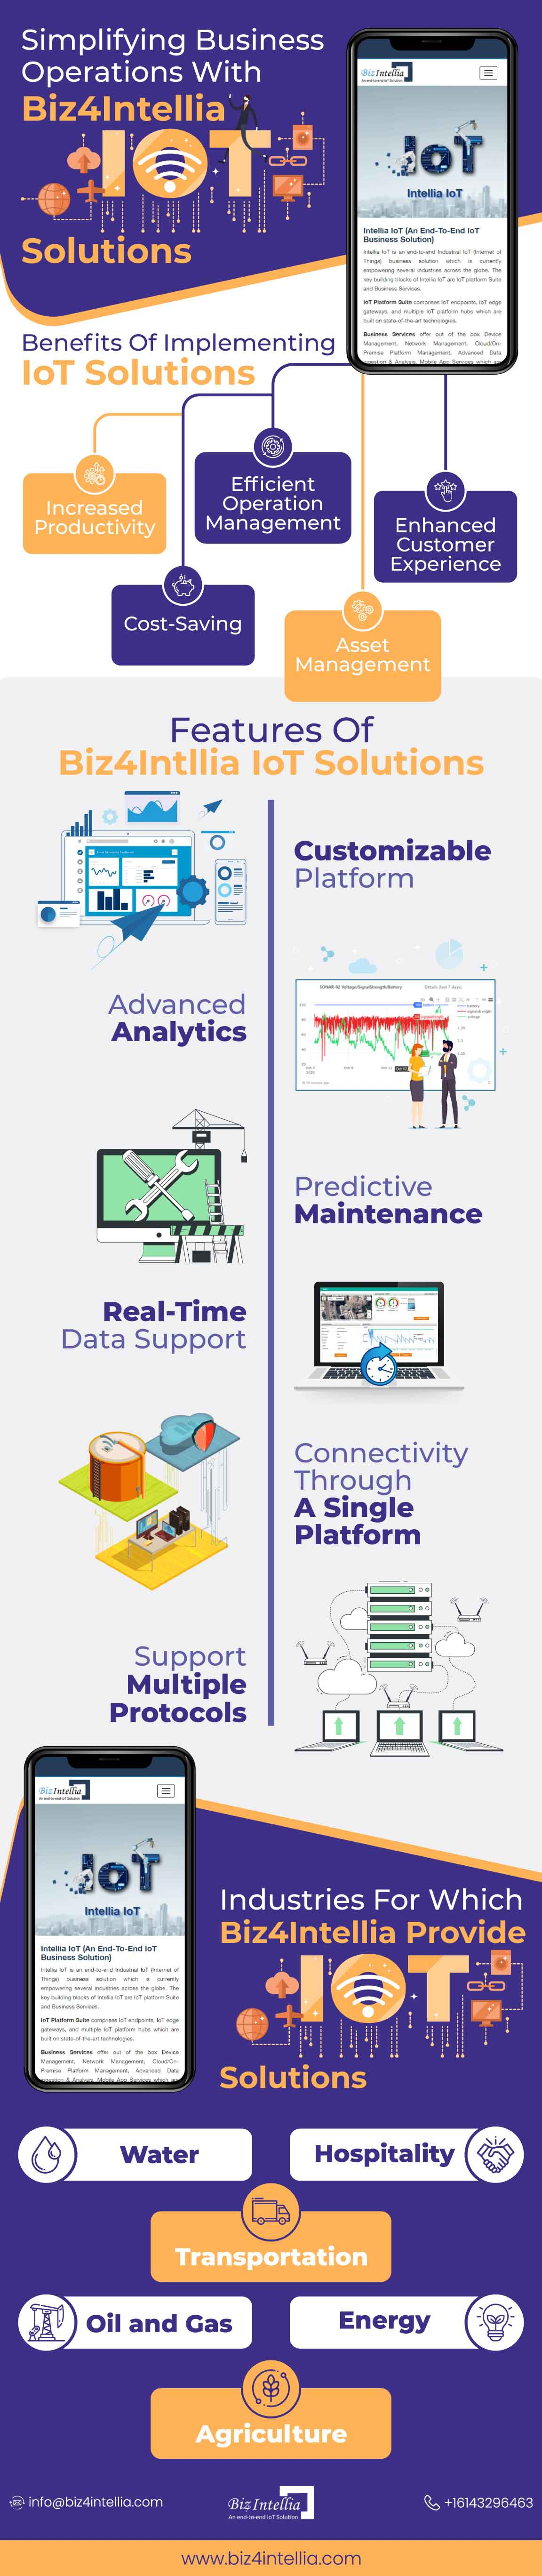 simplifying-business-operations-with-biz4intellia-iot-solutions